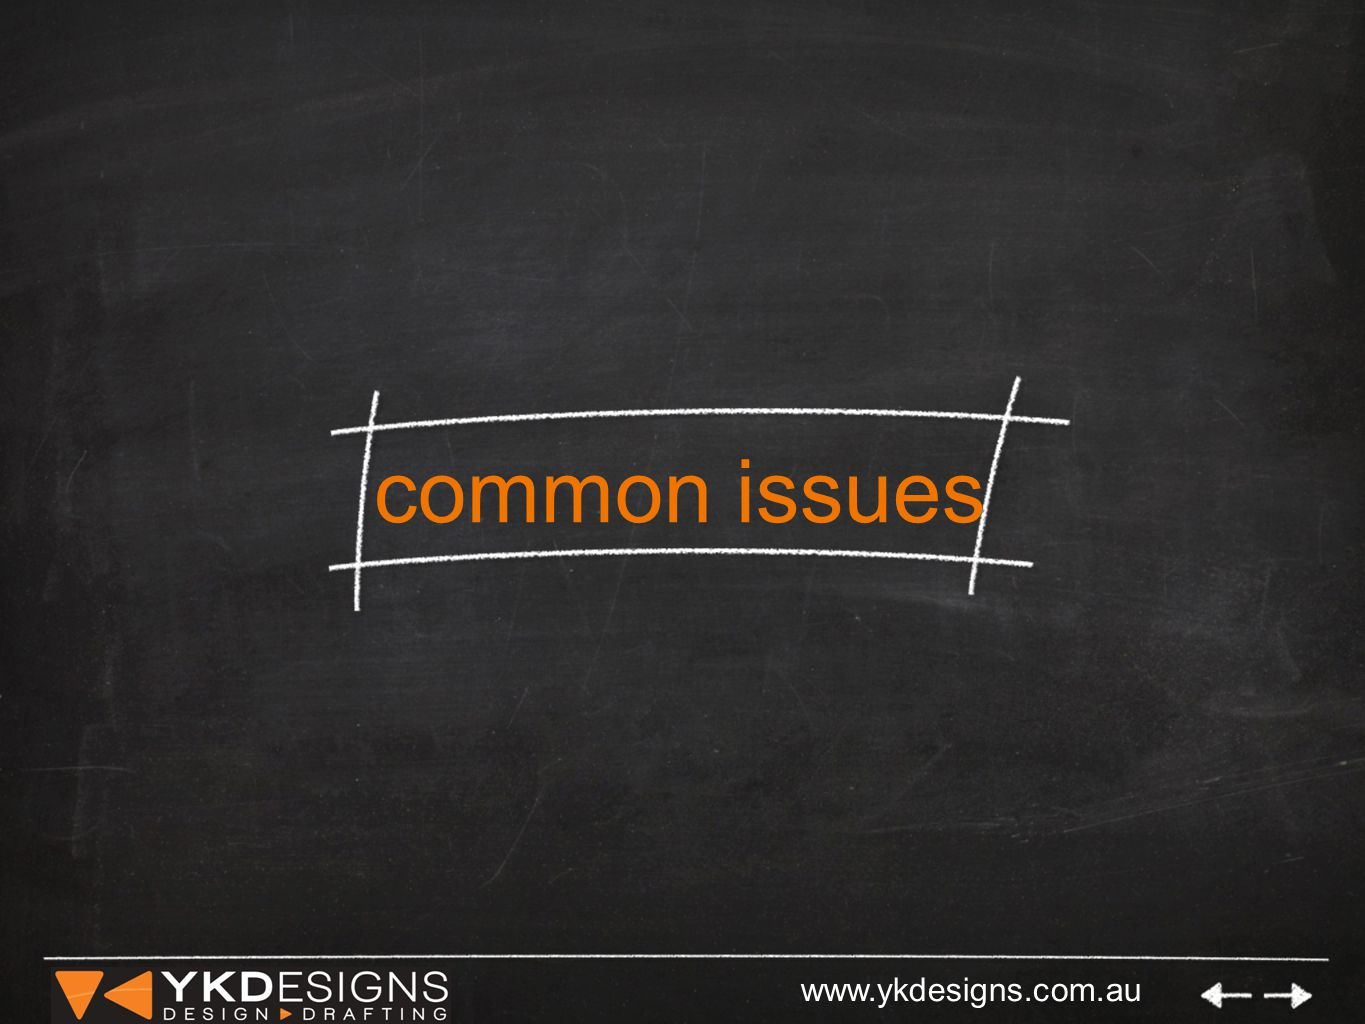 www.ykdesigns.com.au common issues